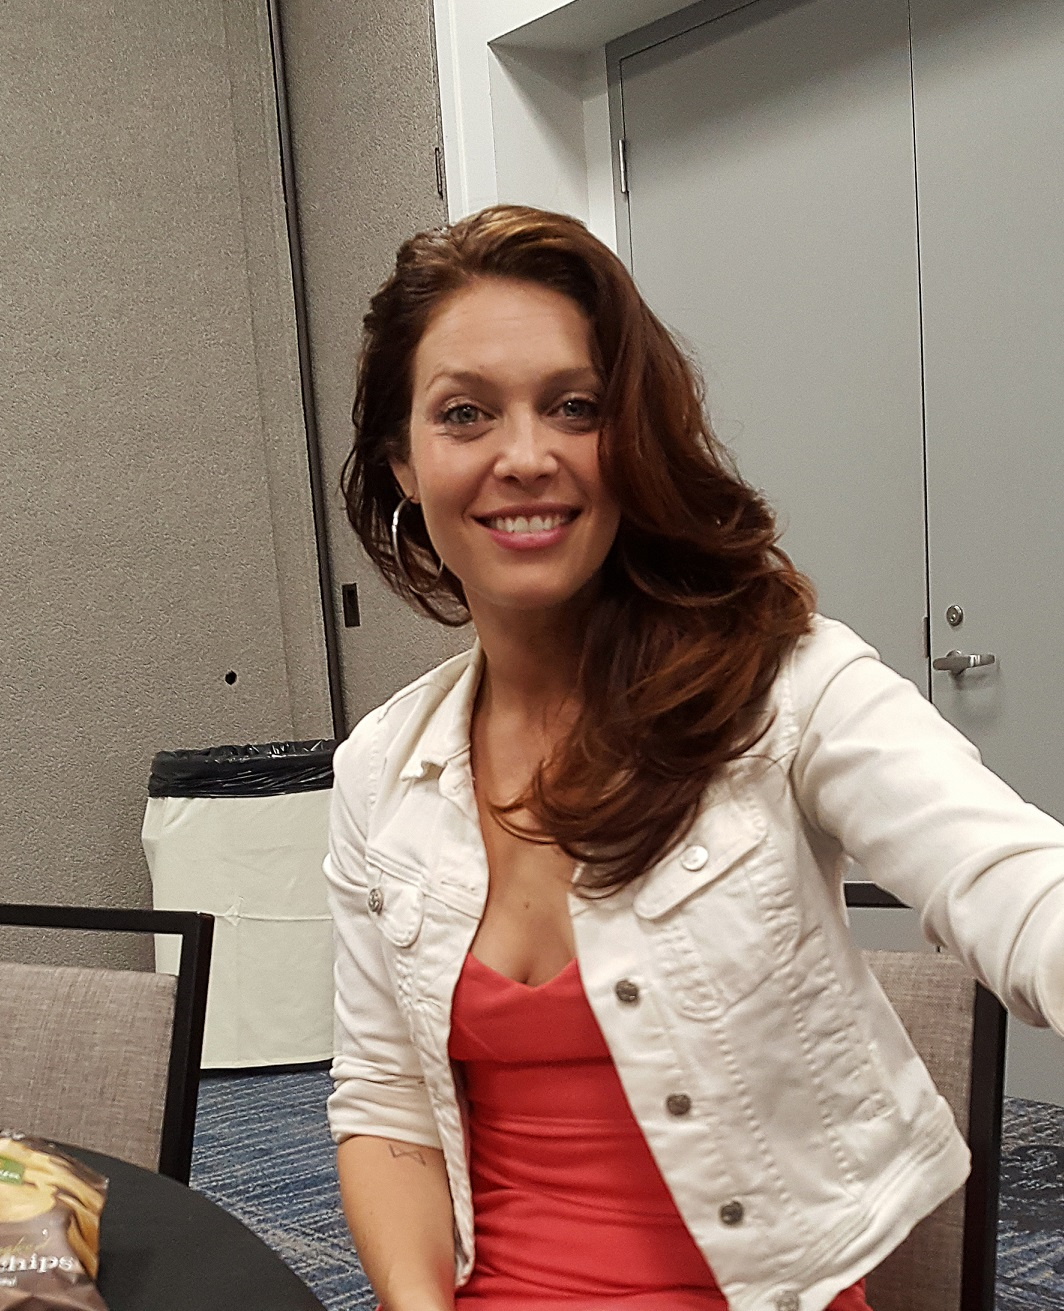 Alaina Huffman talks Directing, Fandom, Social Change and 'Supernatural', of course 2017 images